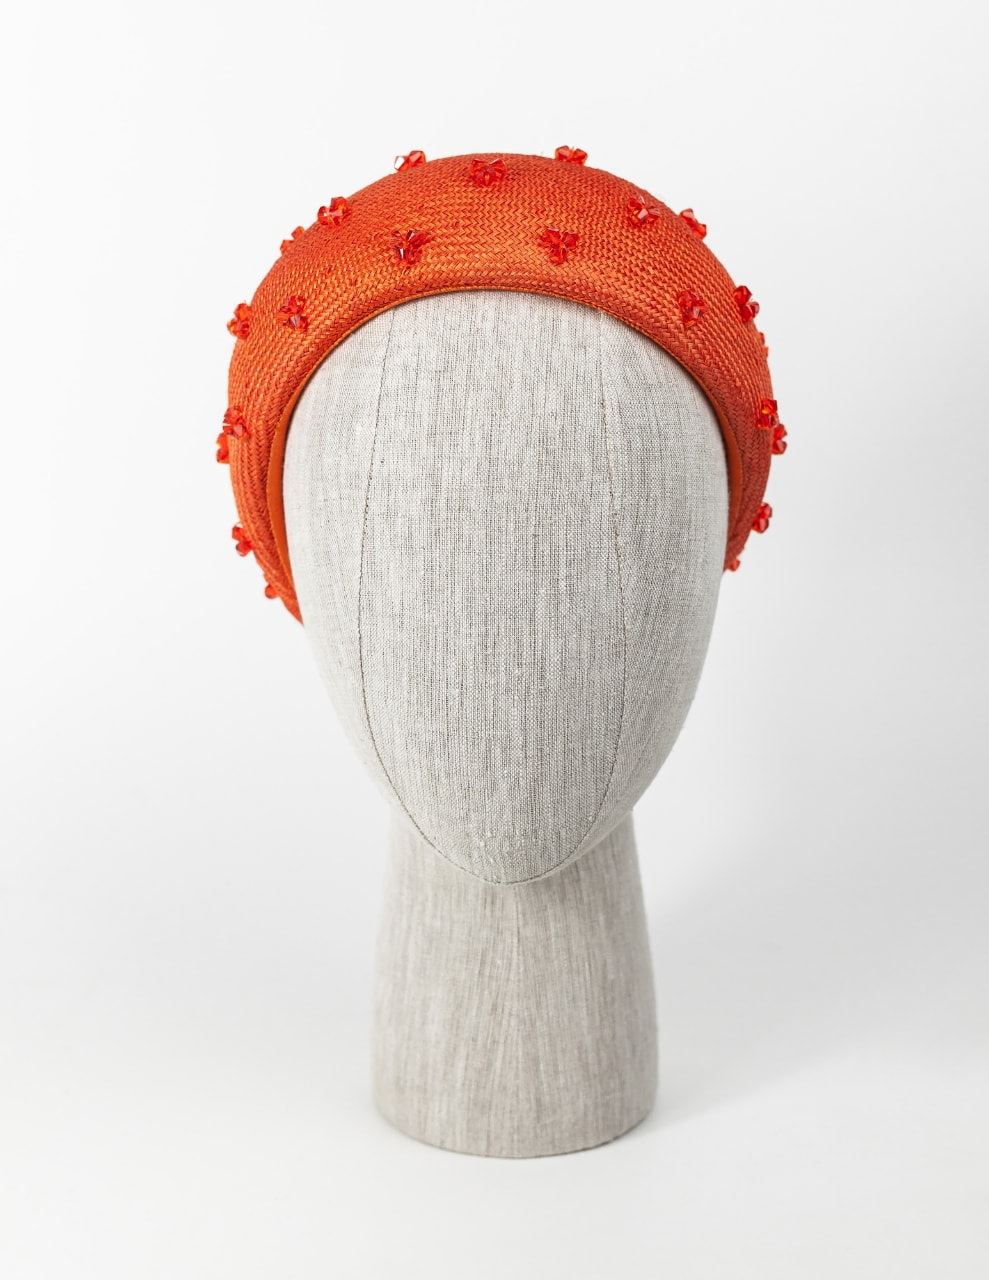 Orange straw headpiece (wide) with Swarovski crystals